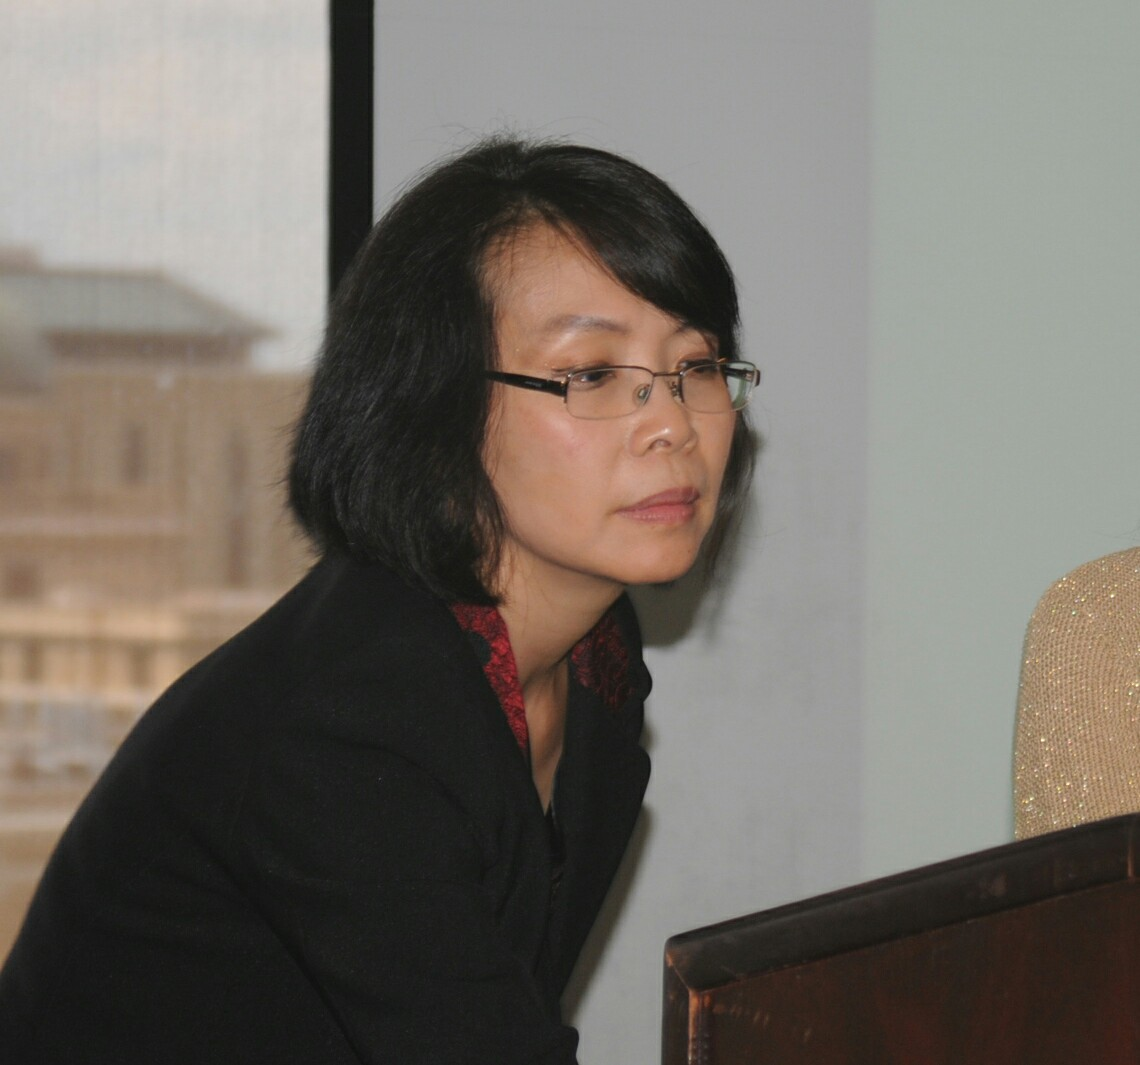 Ms. Yuhsin Lee, 2017 Conference Program Chair